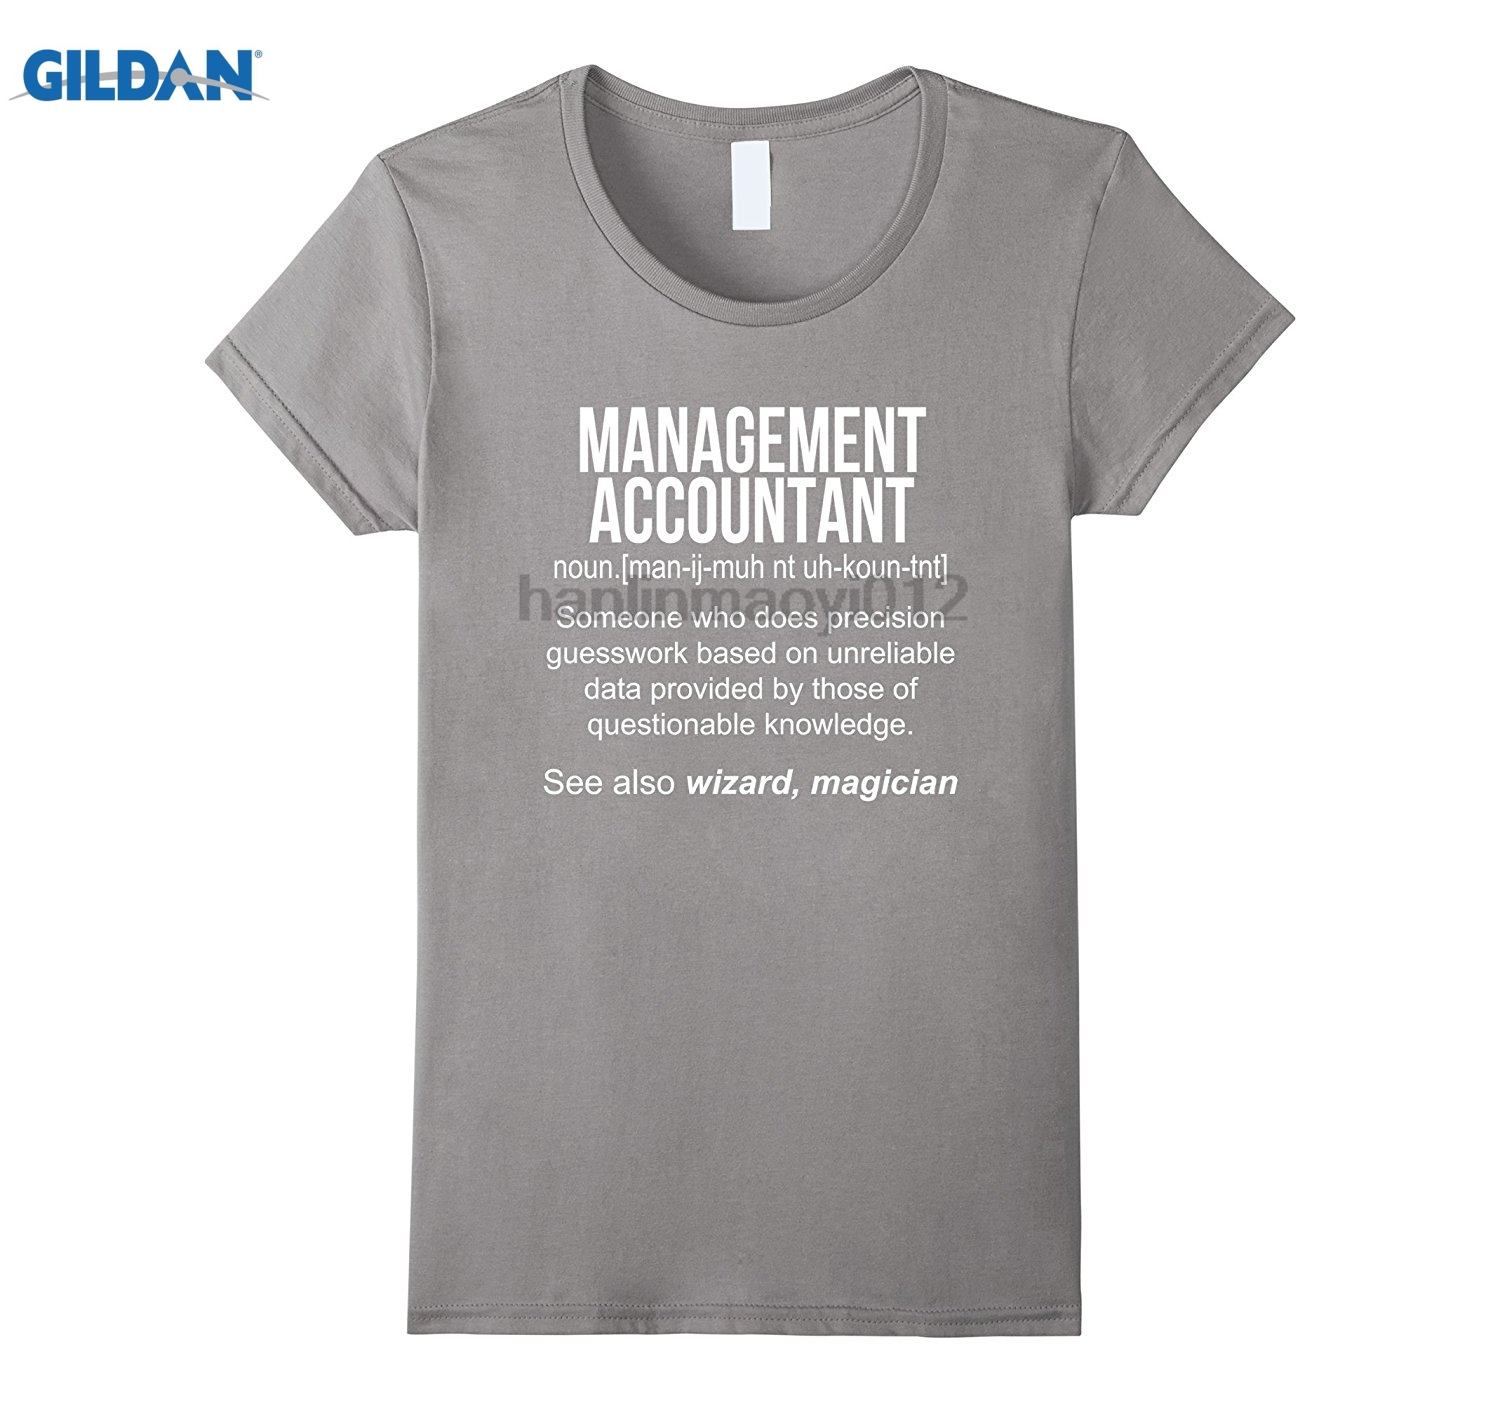 GILDAN Funny Management Accountant Meaning Noun Definition Shirt Trend new trend Hot Womens T-shirt